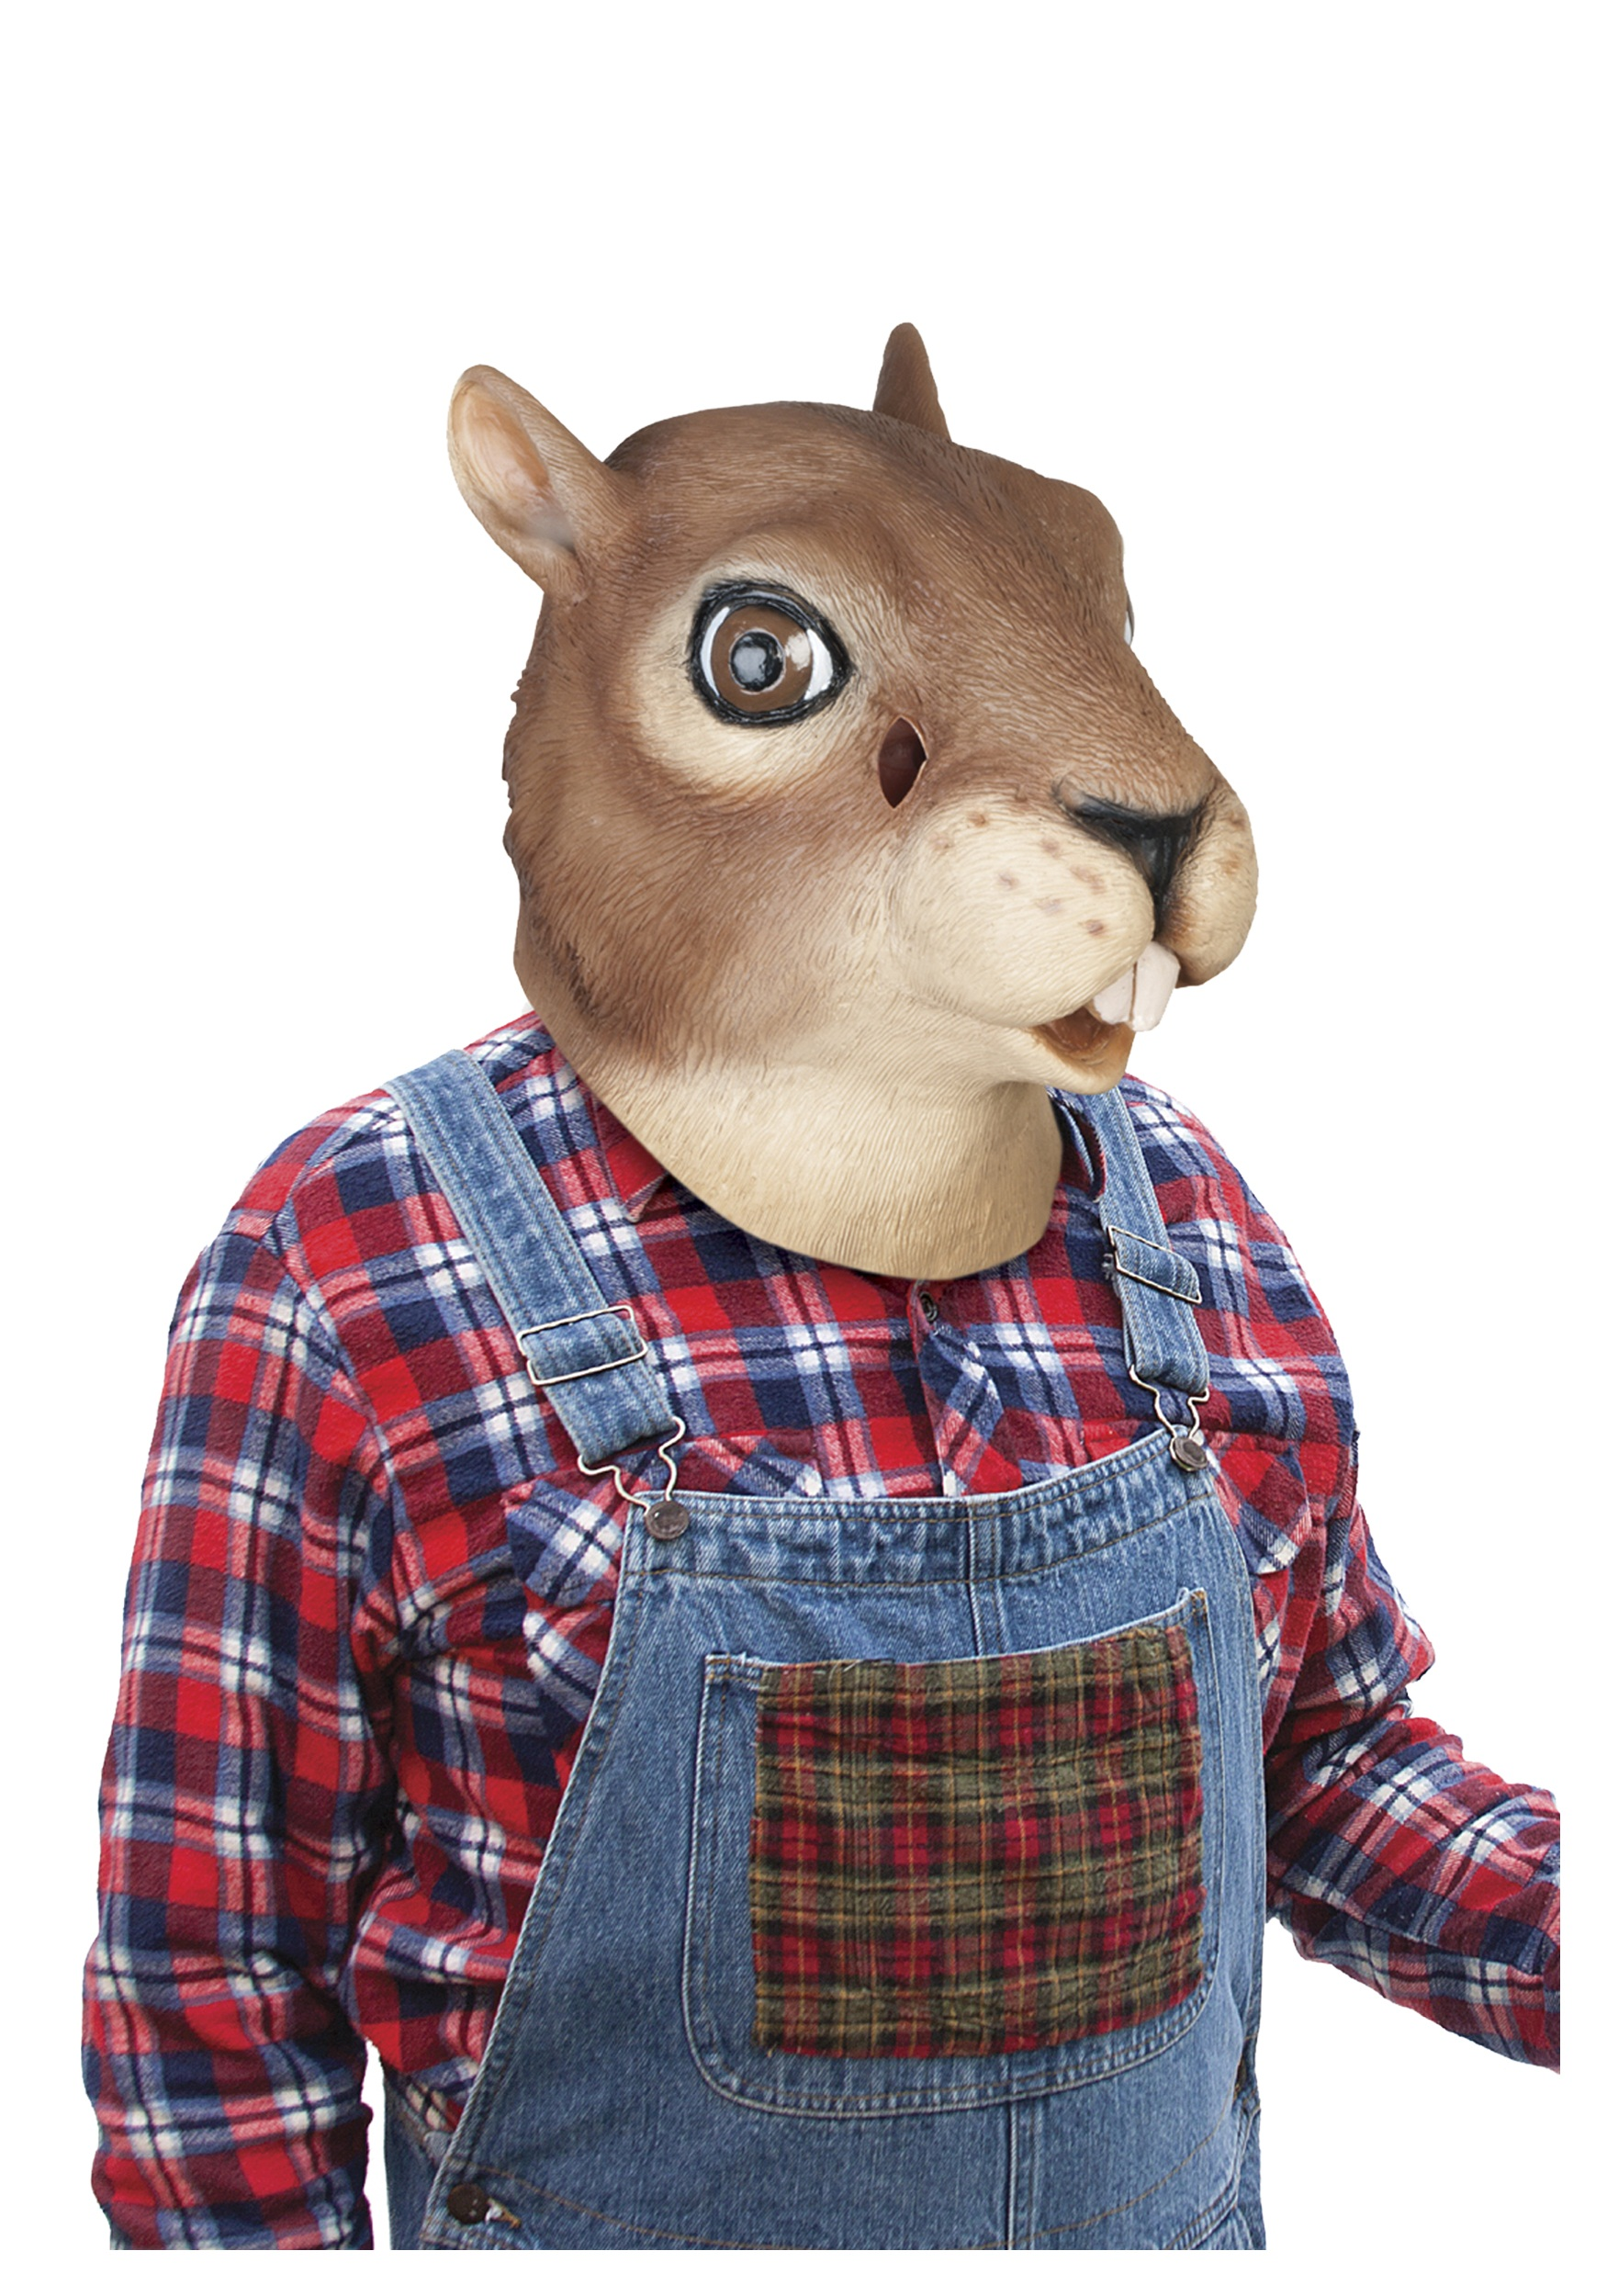 Squirrel_Mask